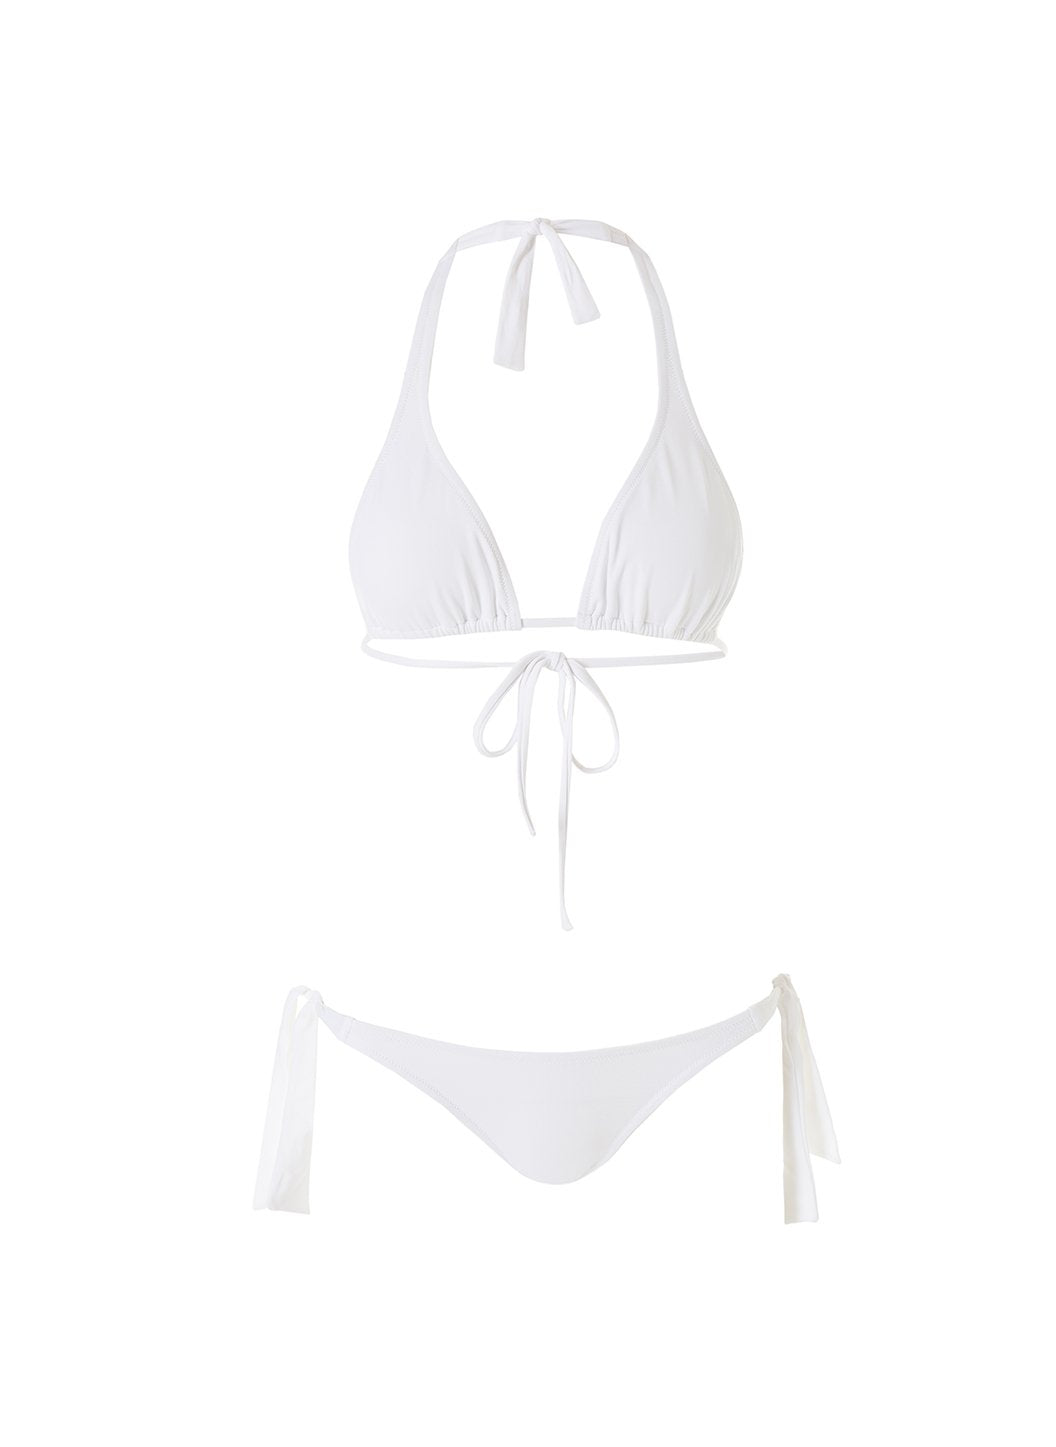 Maldives White Just Married Halterneck Bikini